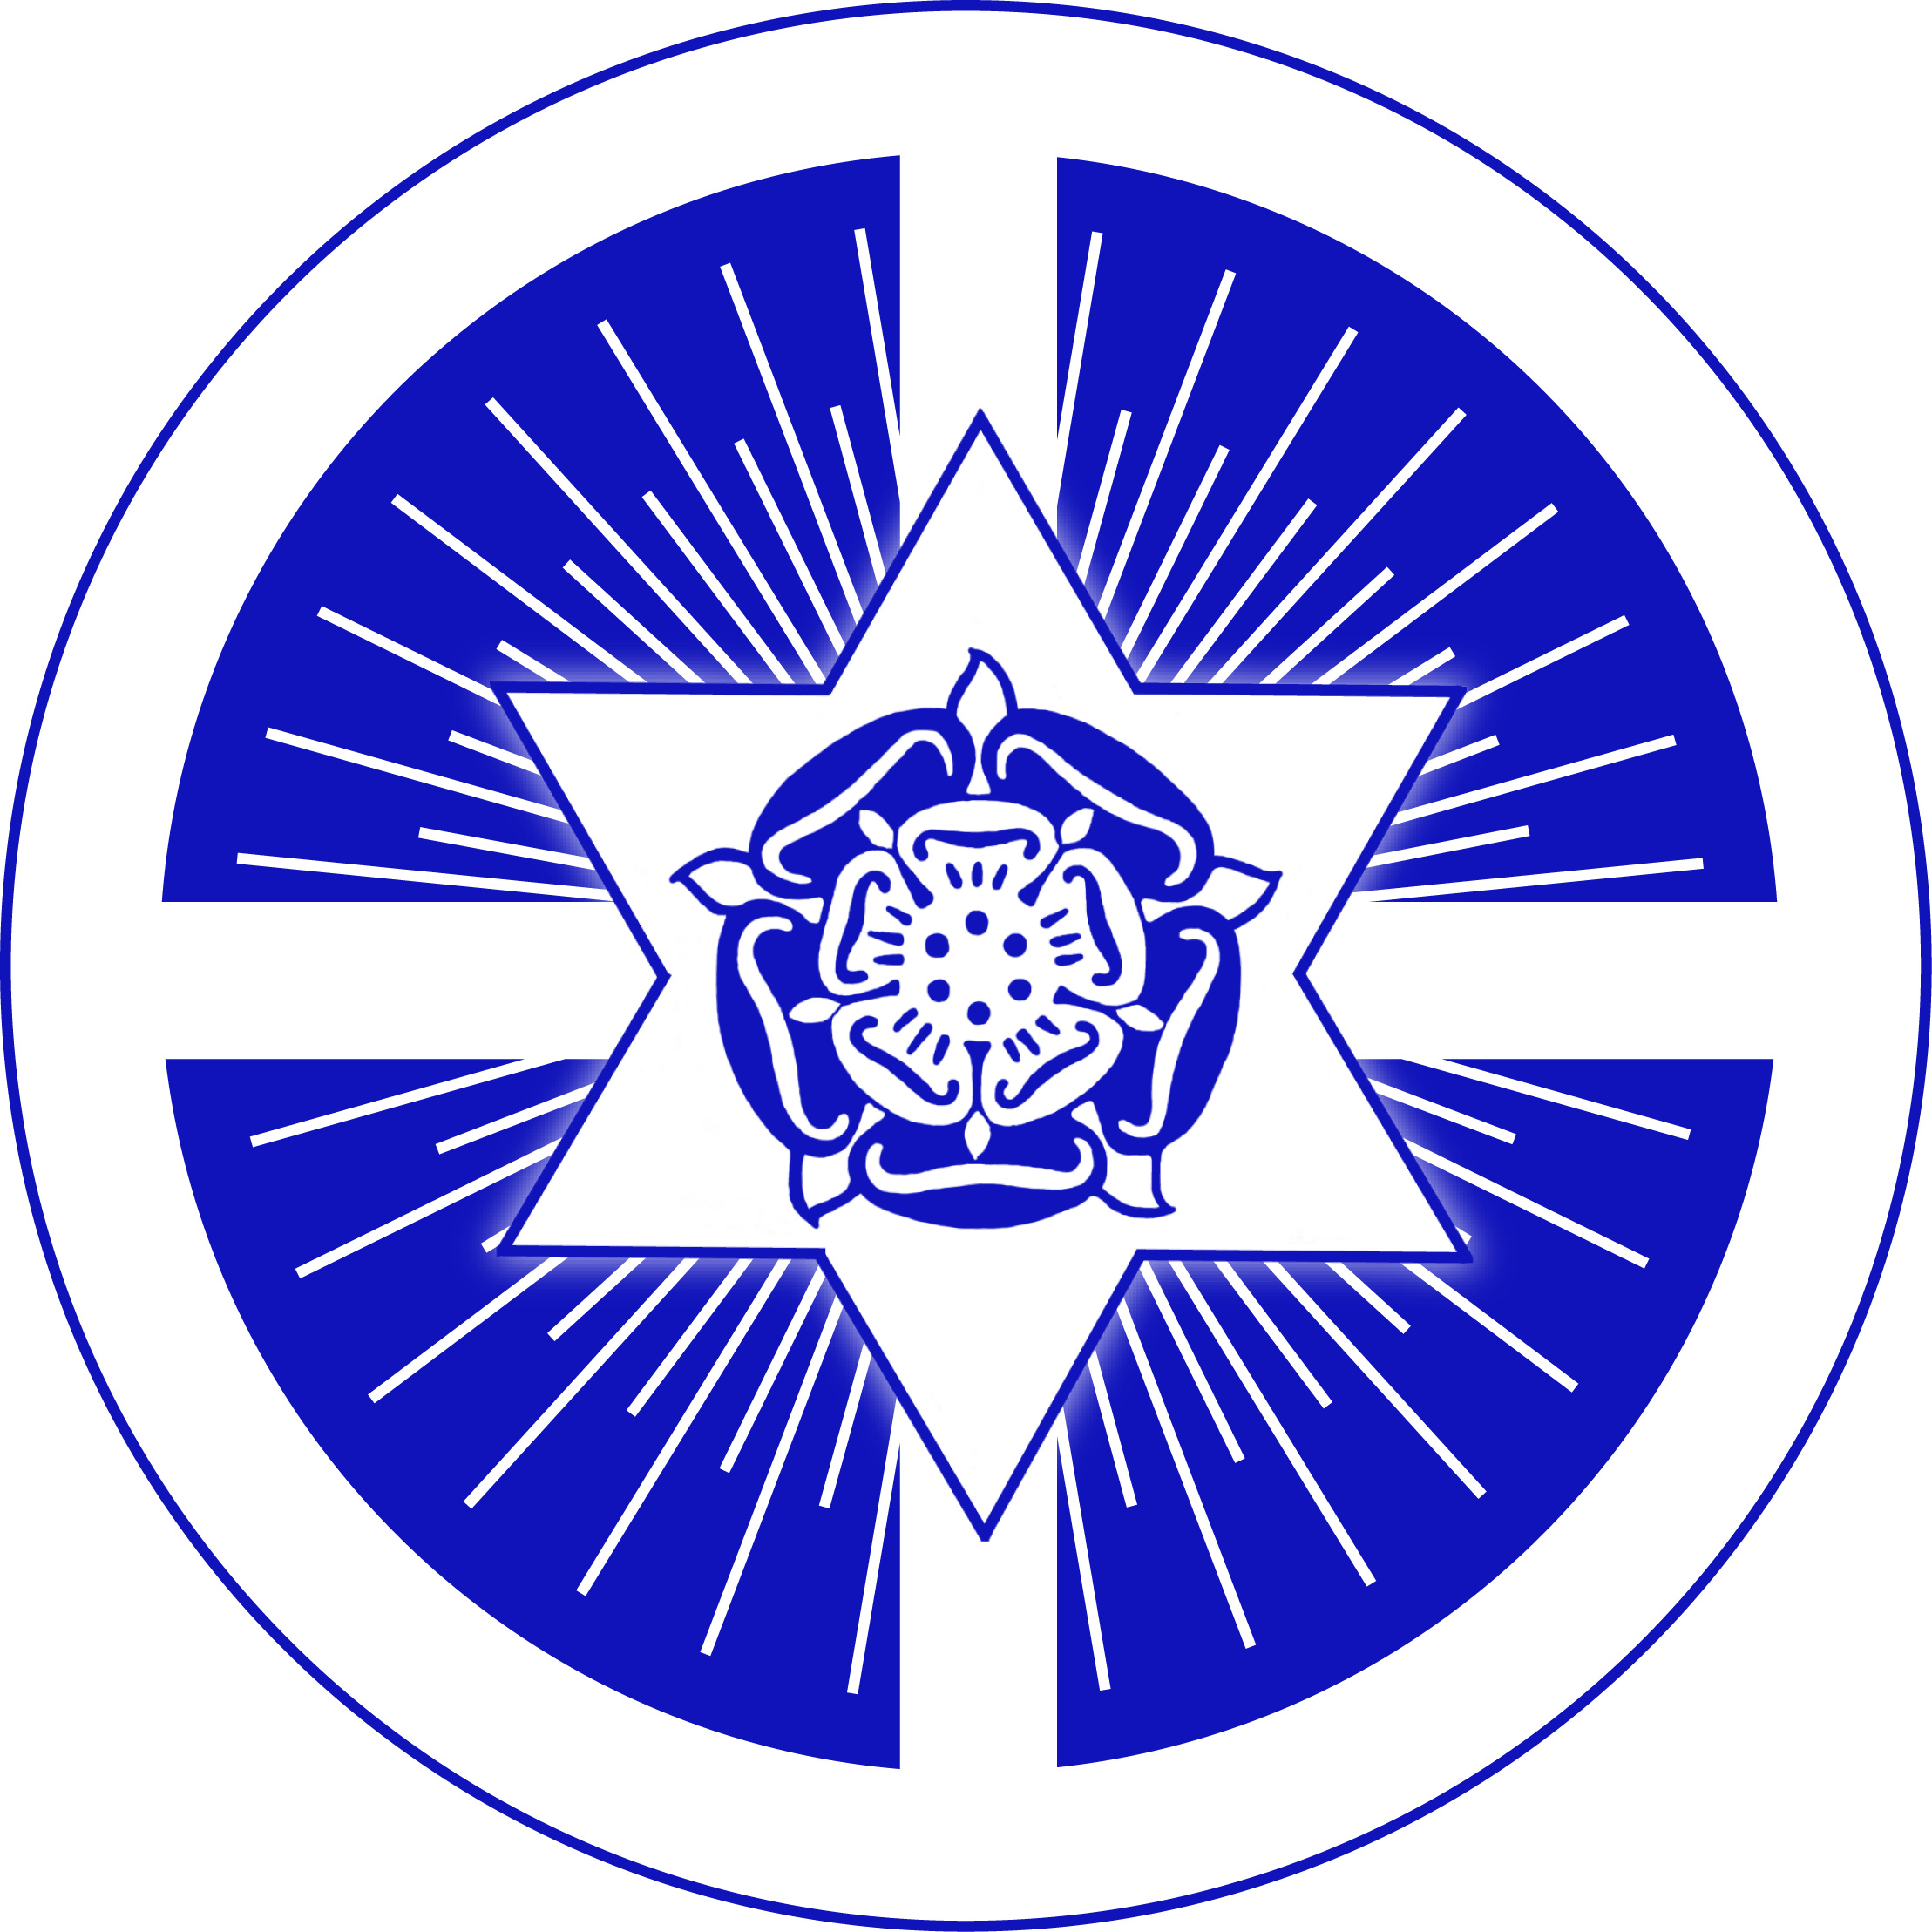 Theosophical Society.